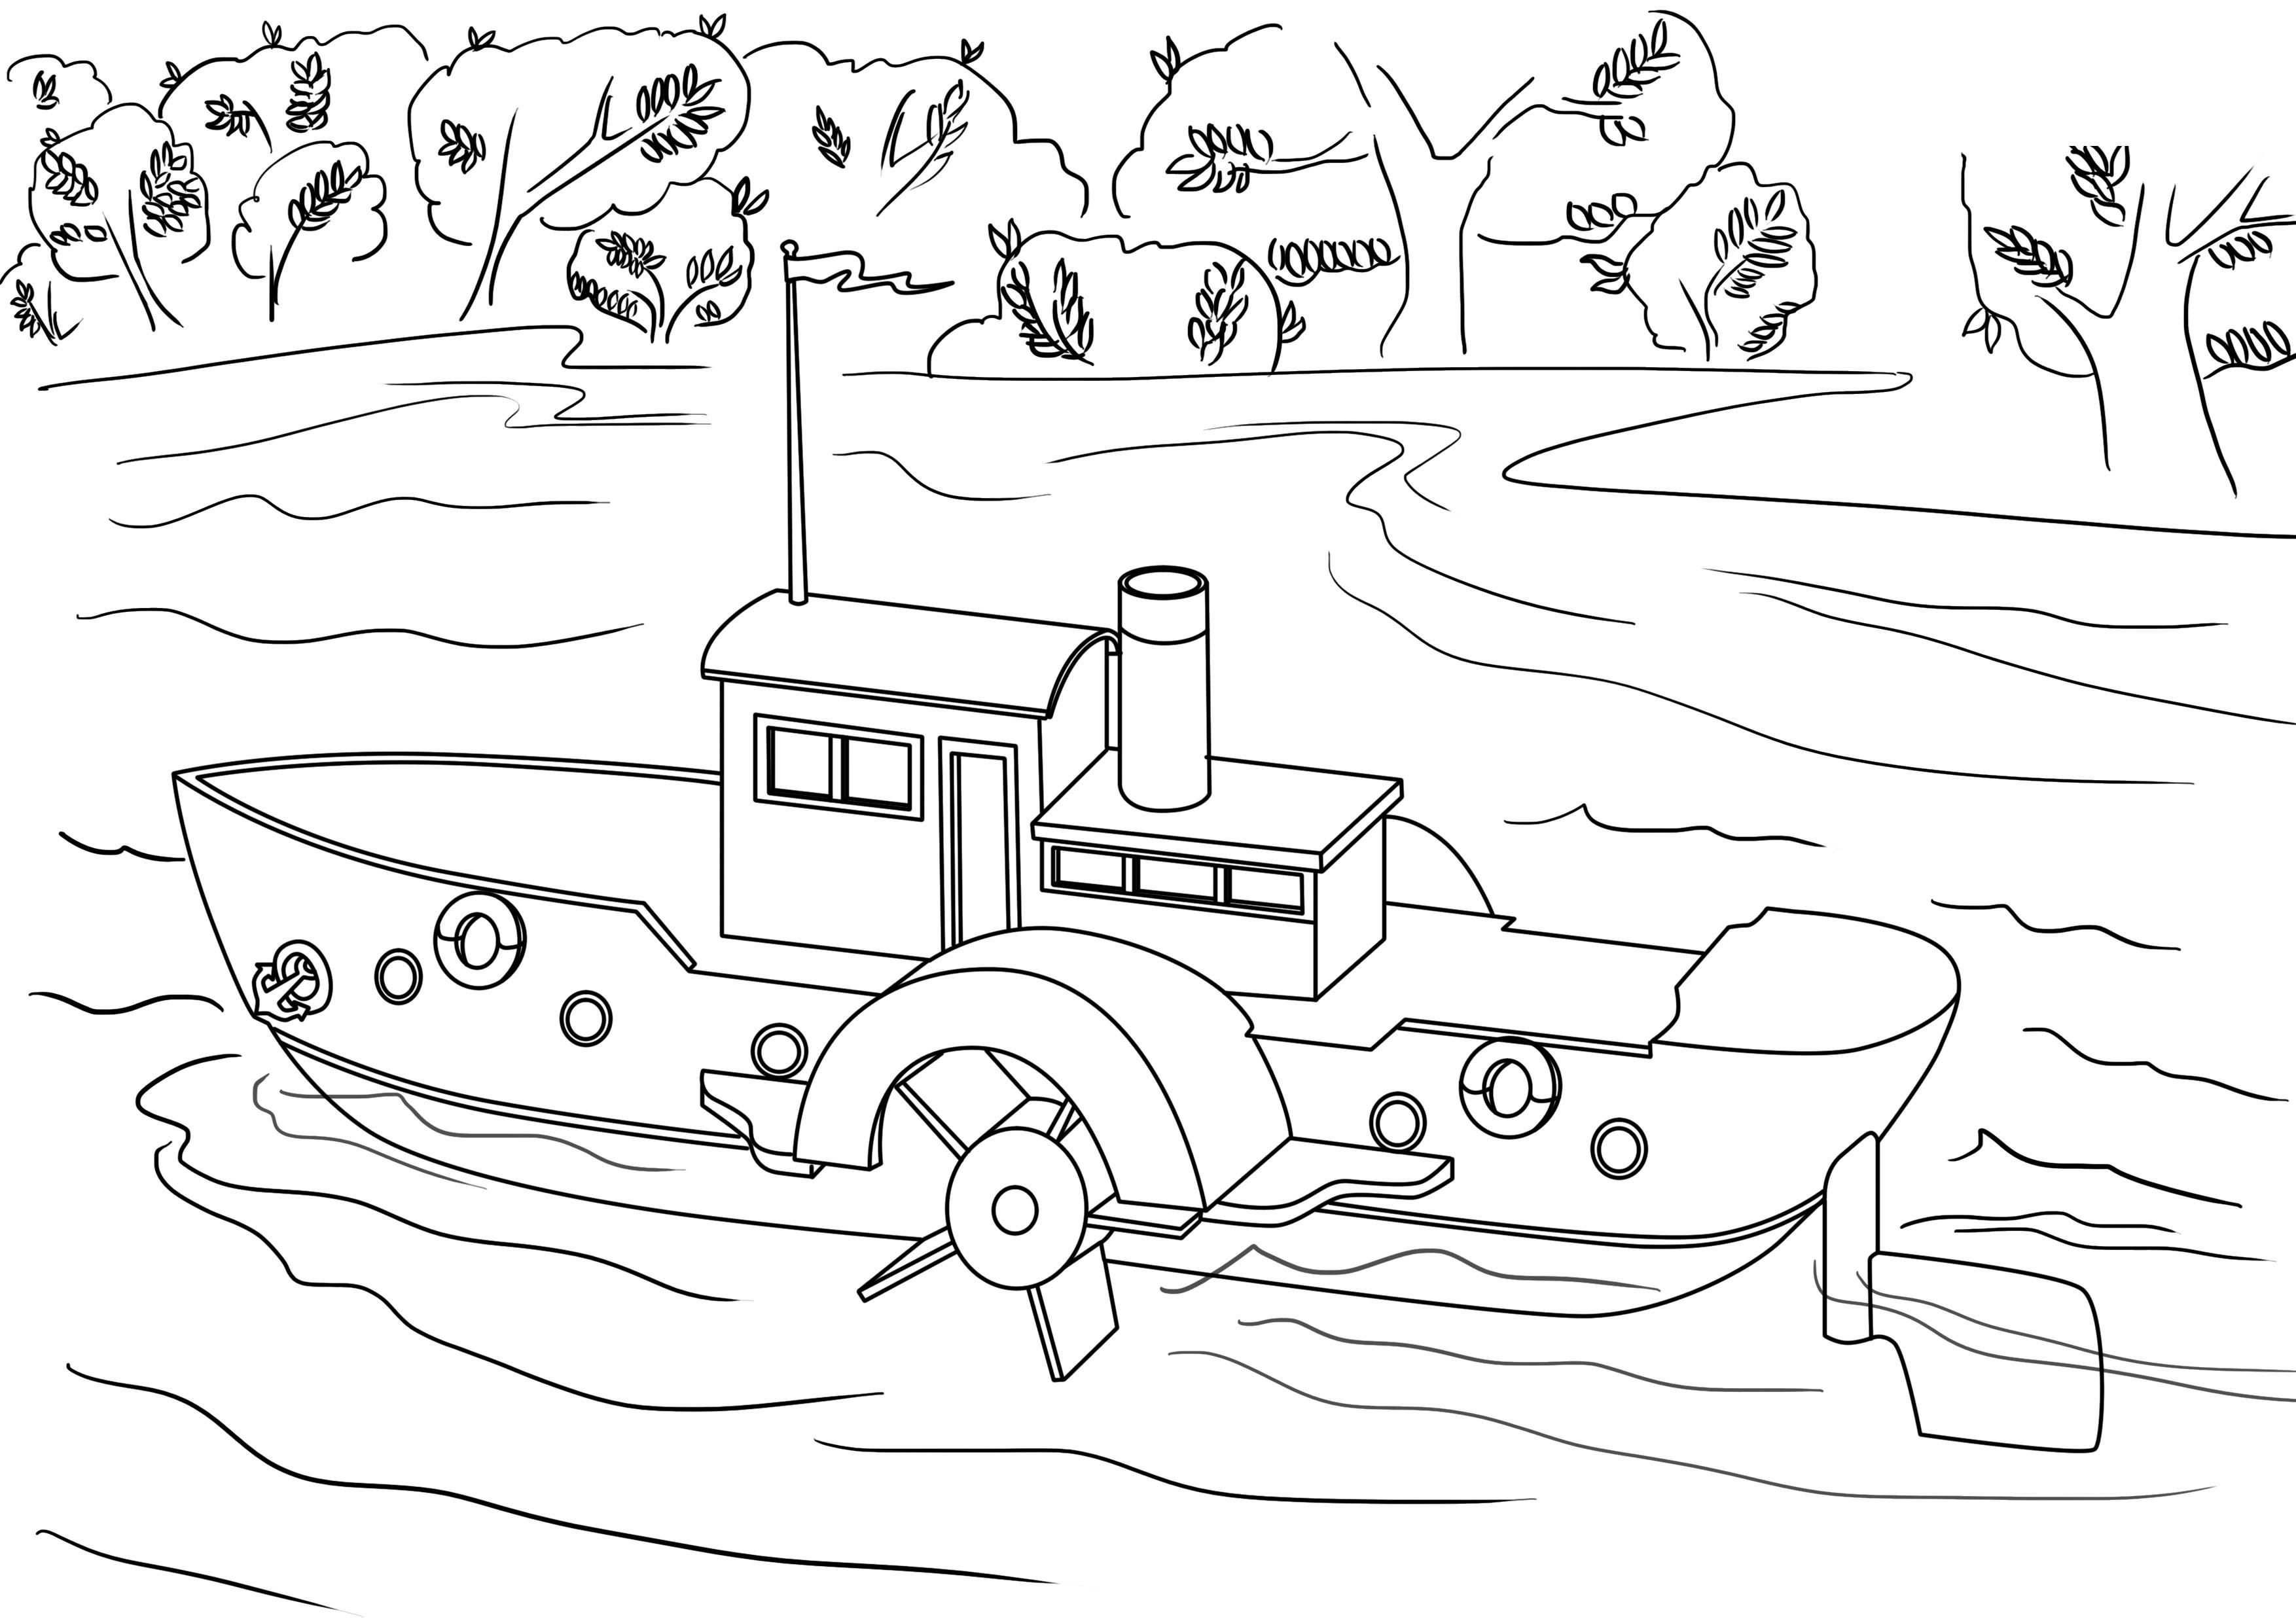 river coloring pages printable river coloring pages coloring pages to download and print pages printable coloring river